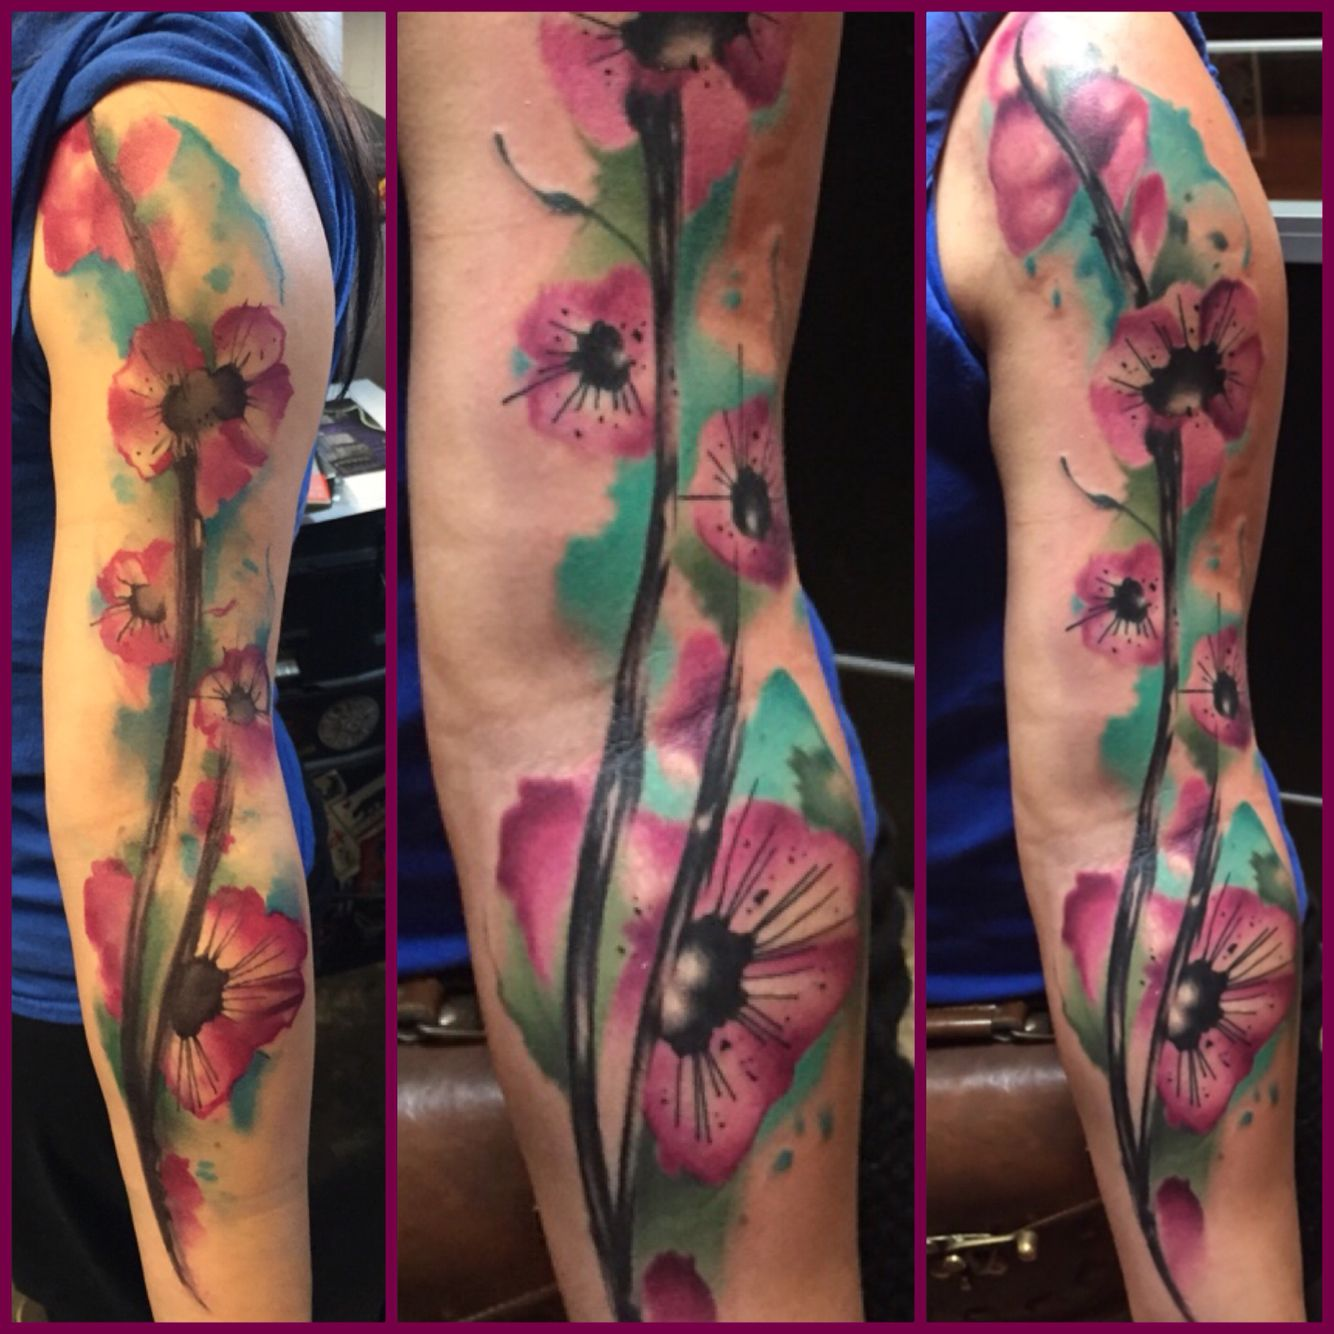 Watercolor tattoo artists in houston texas - Watercolor Tattoo By Elijah Nguyen At Skin Stories Tattoo In